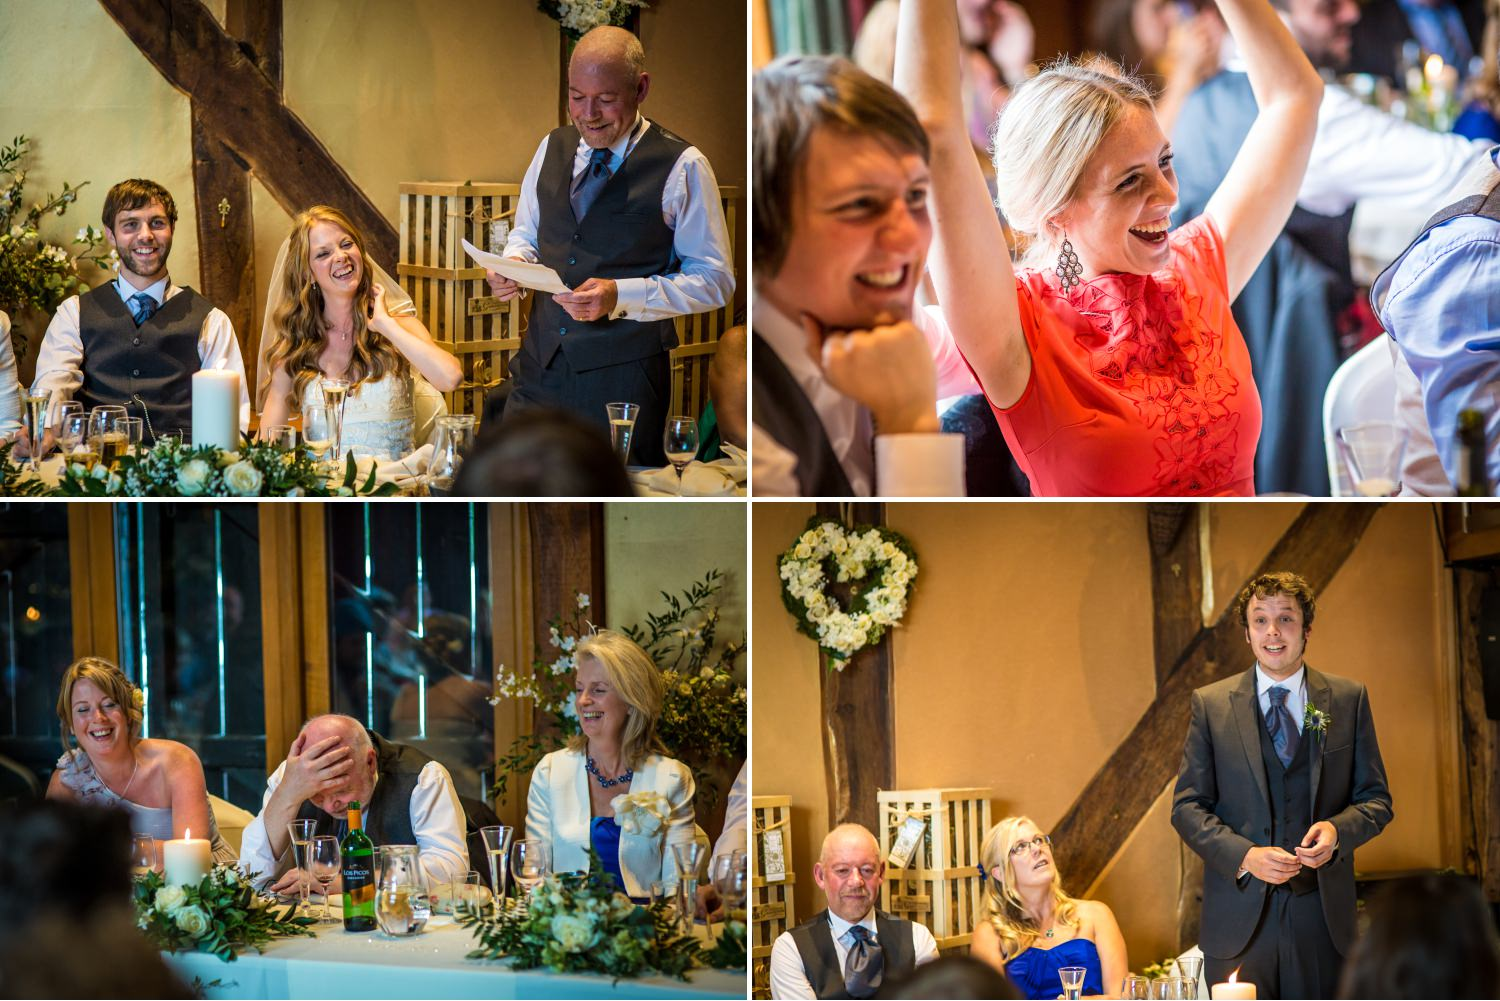 Wedding speeches at Cheshire venue Hundred House Hotel